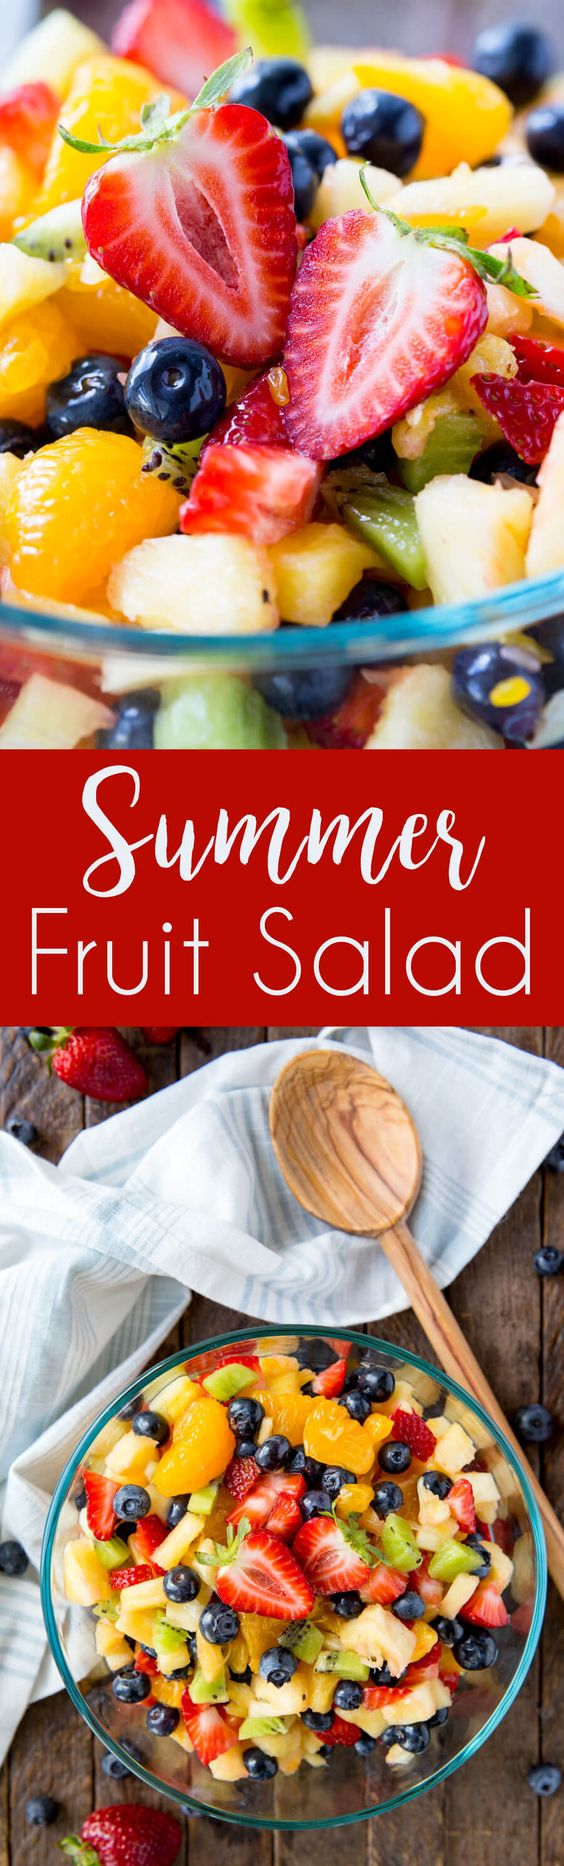 7c23ad7eb754c427e59626318d41df49 6 Summer Salad Recipes to Brighten BSB Diets